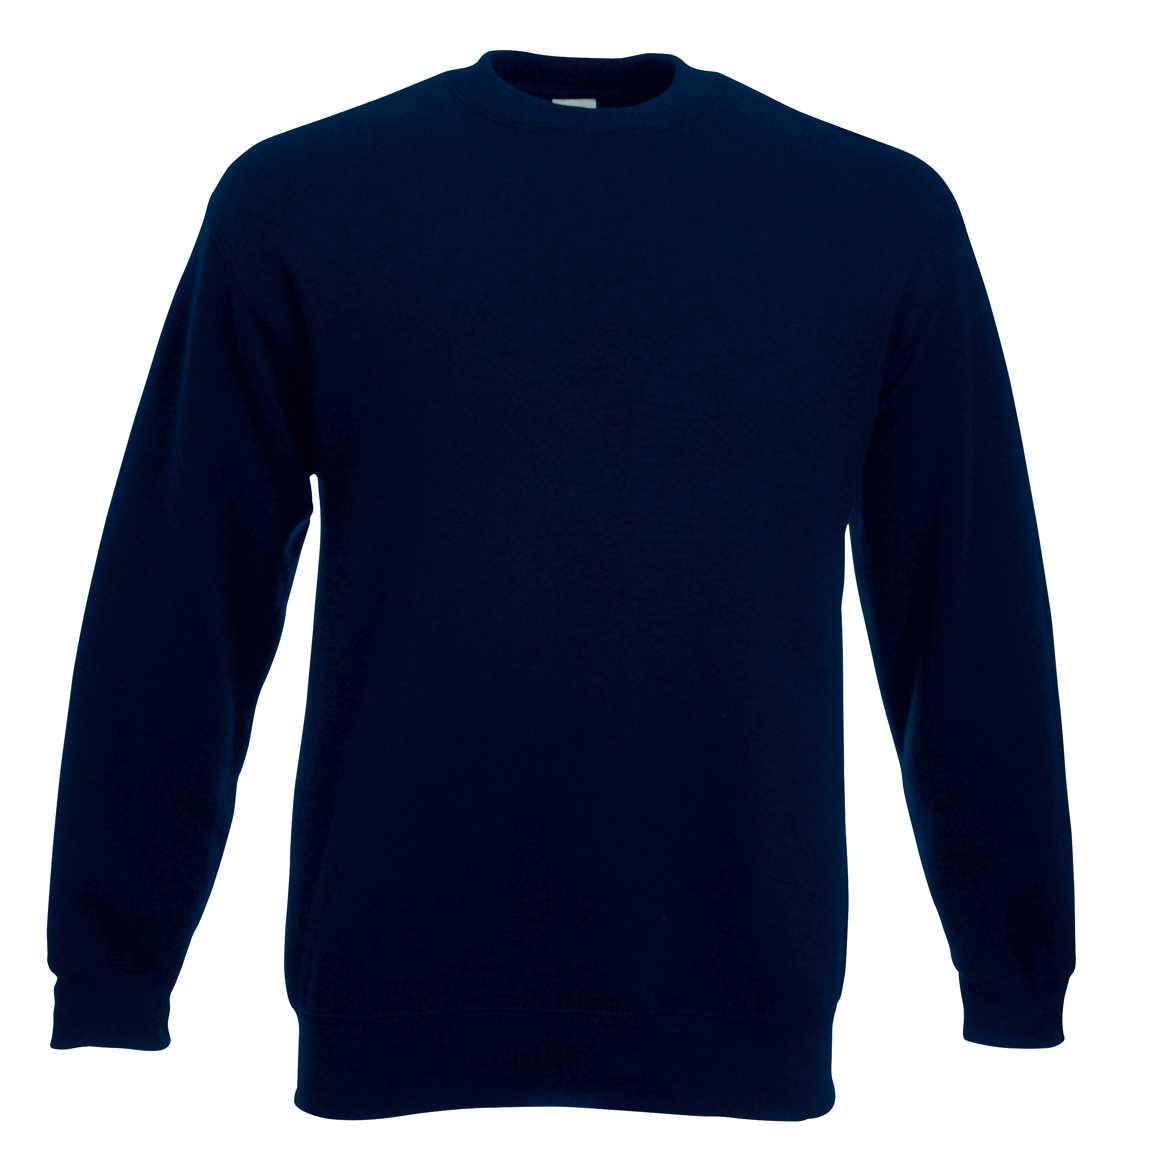 Fruit of the Loom Set-In Sweater 622020 Deep Navy